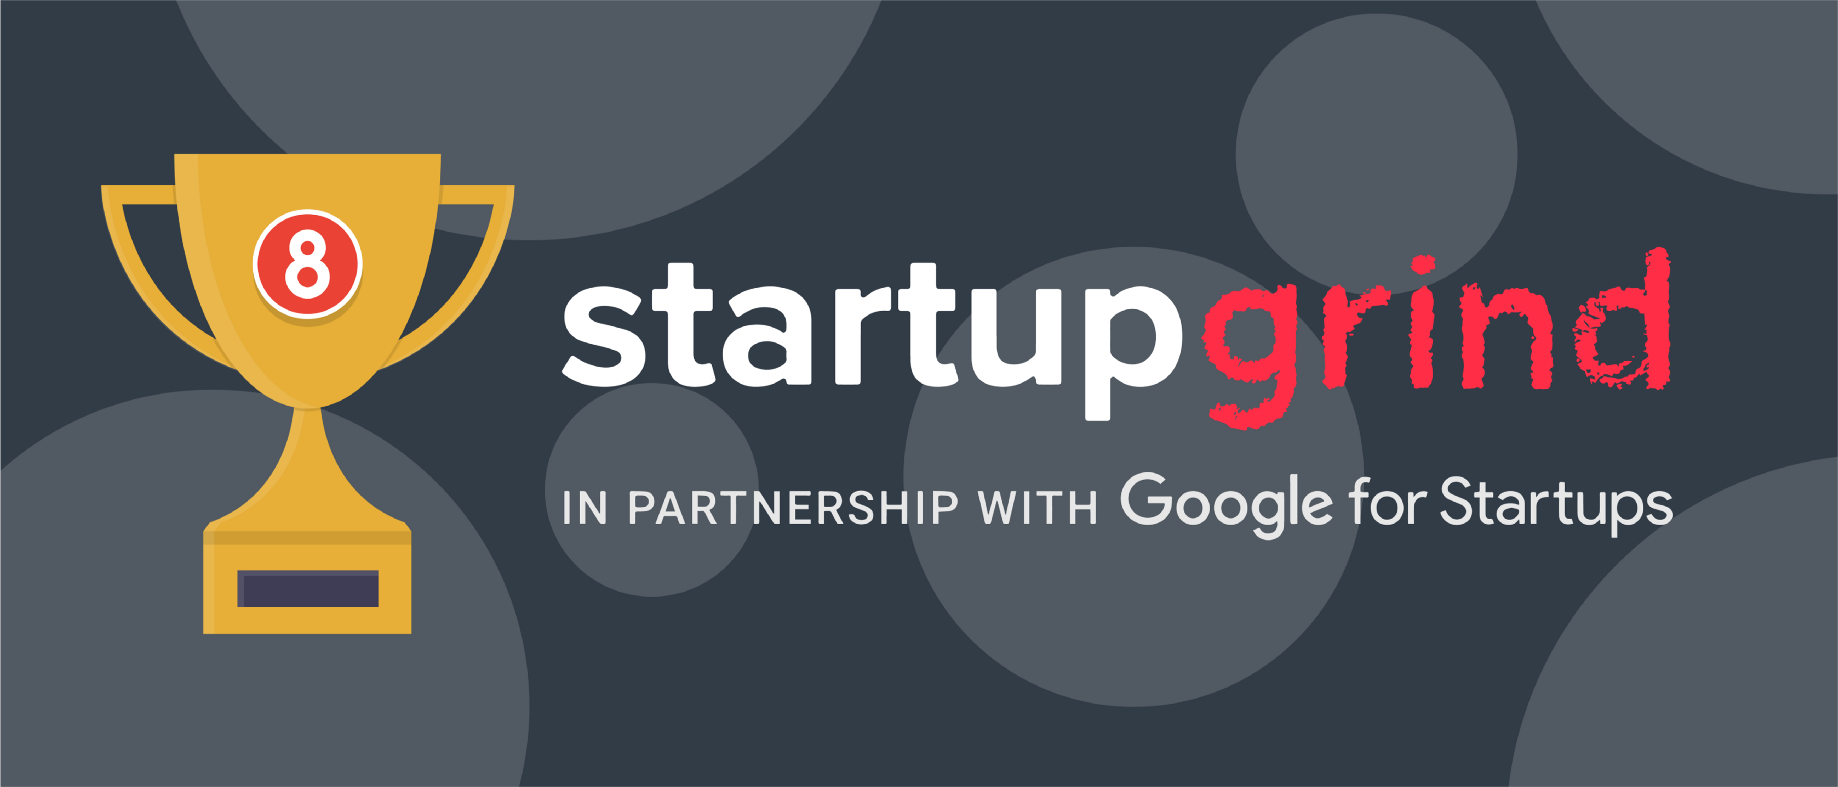 8base Wins Startup Of The Year at Startup Grind Global Conference